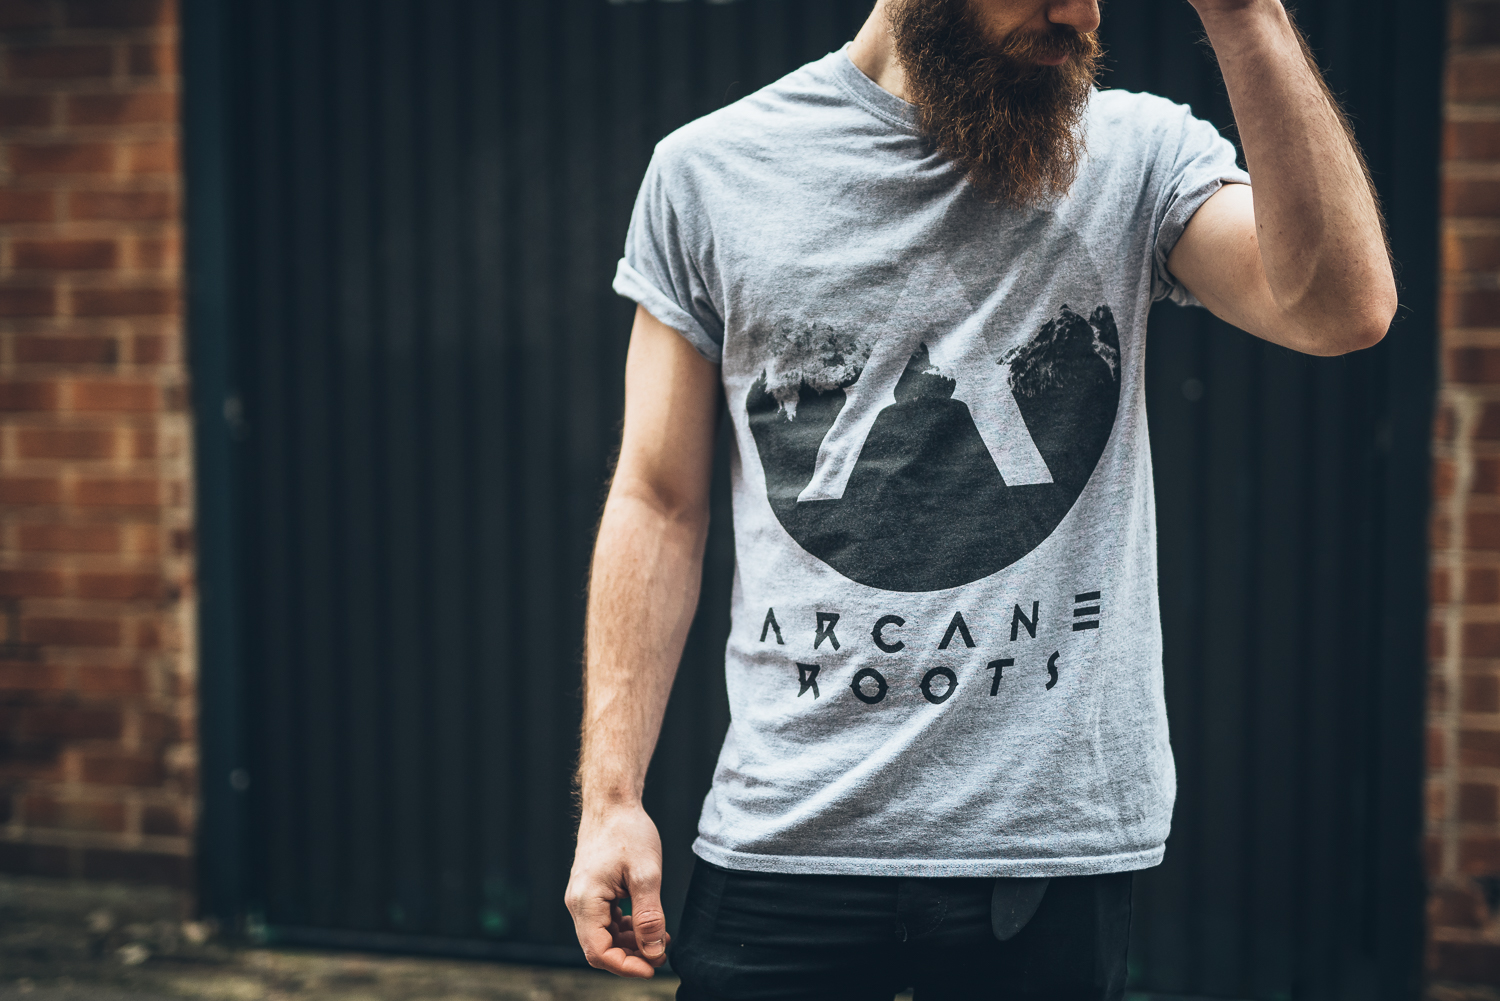 ARCANE ROOTS 'ALPINE' TEE - FULL DESIGN